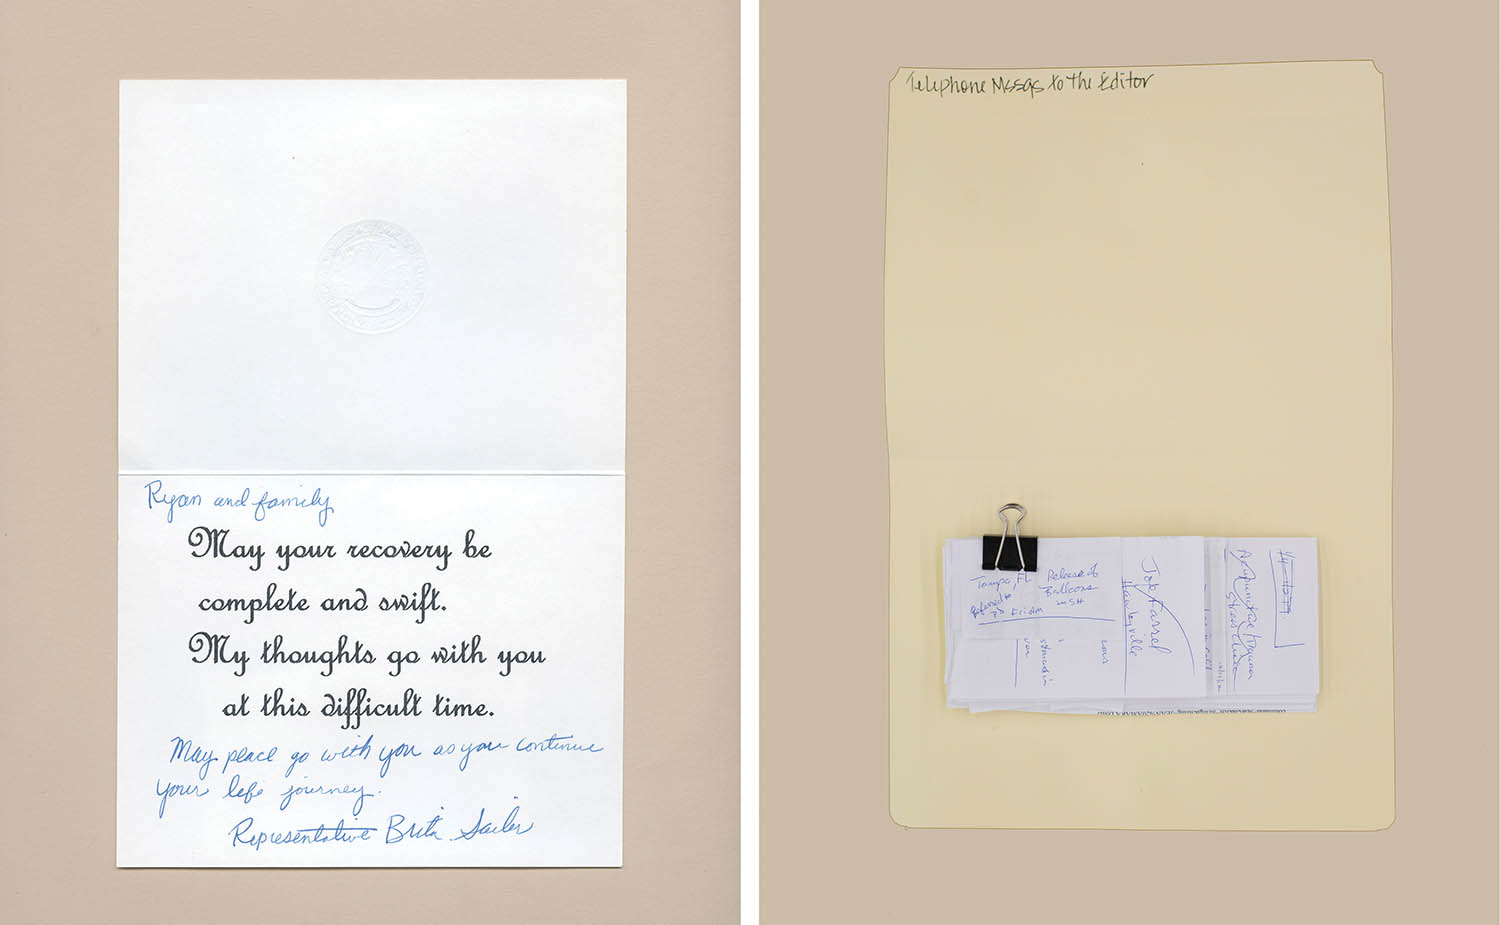 (L): Former state representative Brita Sailer's card to Red Lake survivor Ryan Auginash. (R): A collection of phone messages to the editor of the <i>Newtown Bee</i>, from the Sandy Hook Shootings Collection, State Archives at the Connecticut State Library. Hartford, CT.